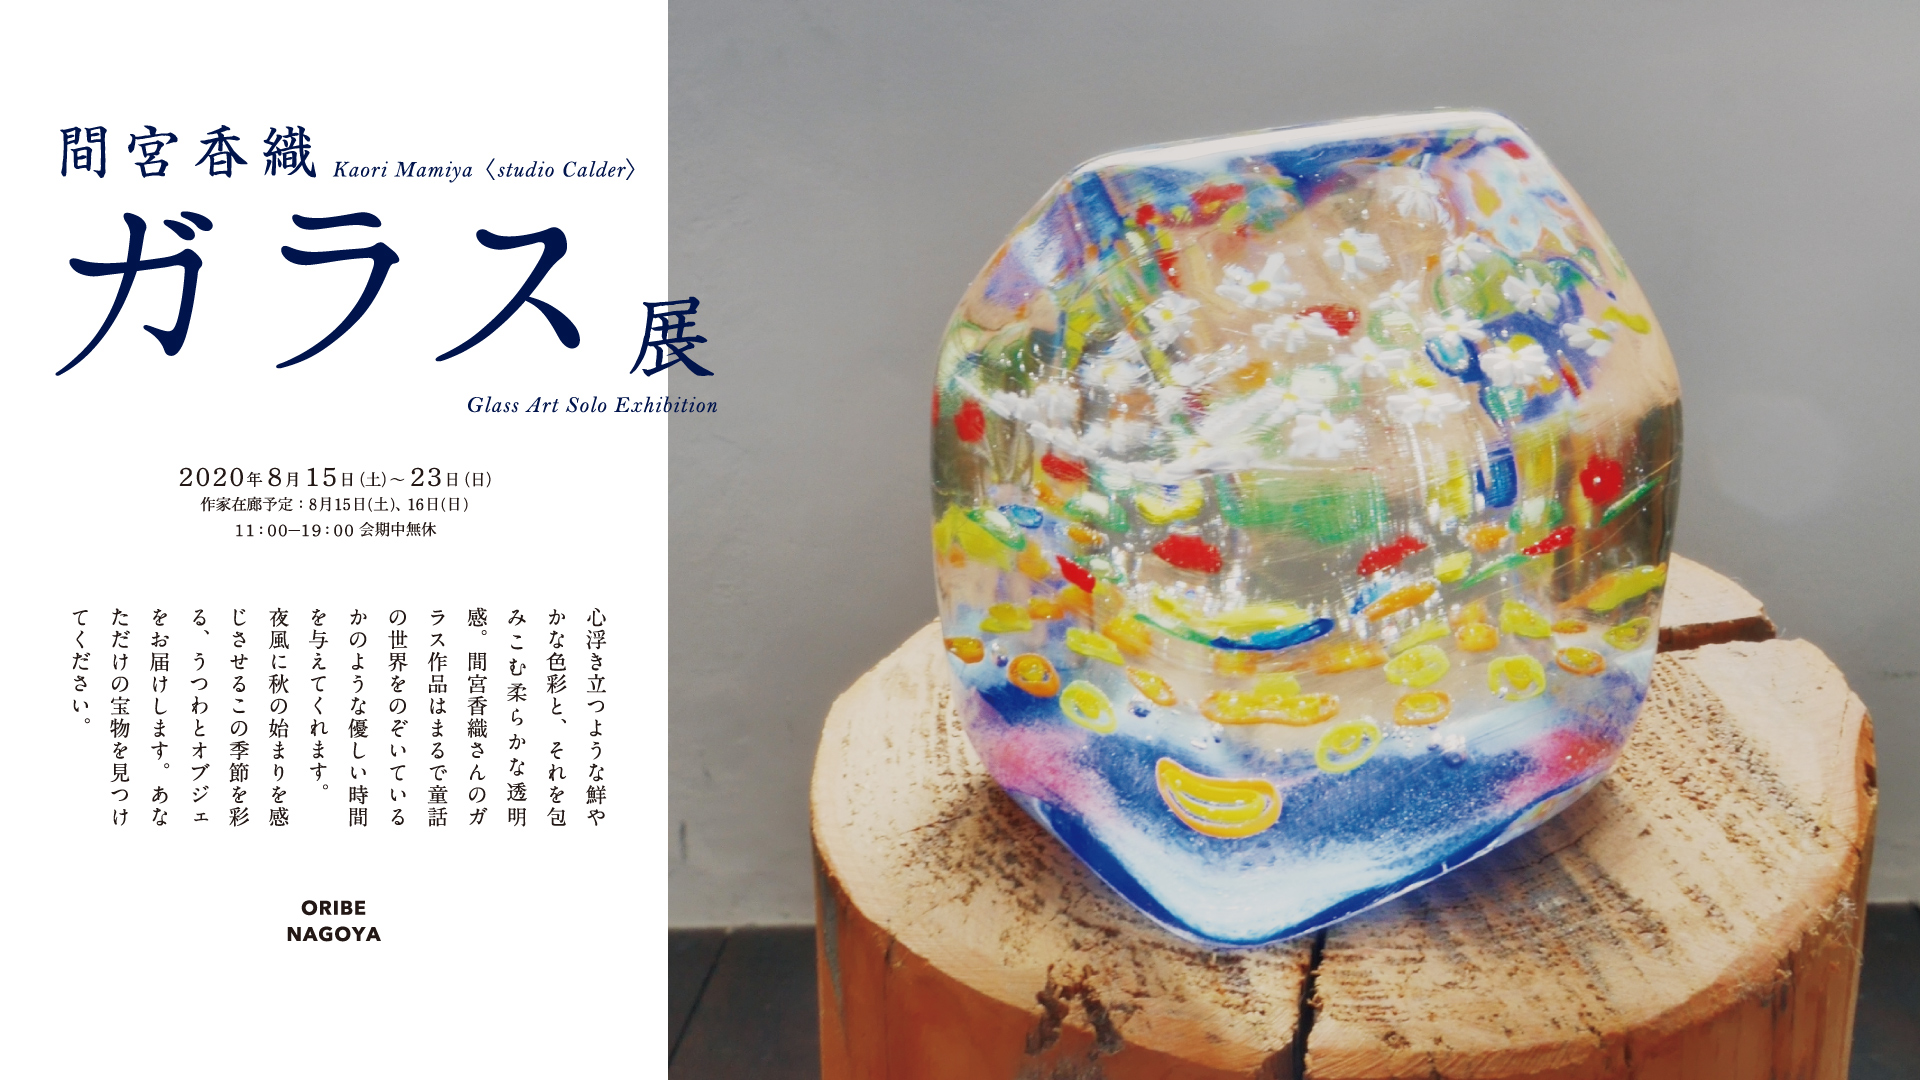 間宮香織ガラス展『Kaori Mamiya〈studio Calder〉 Glass Art Solo Exhibition』